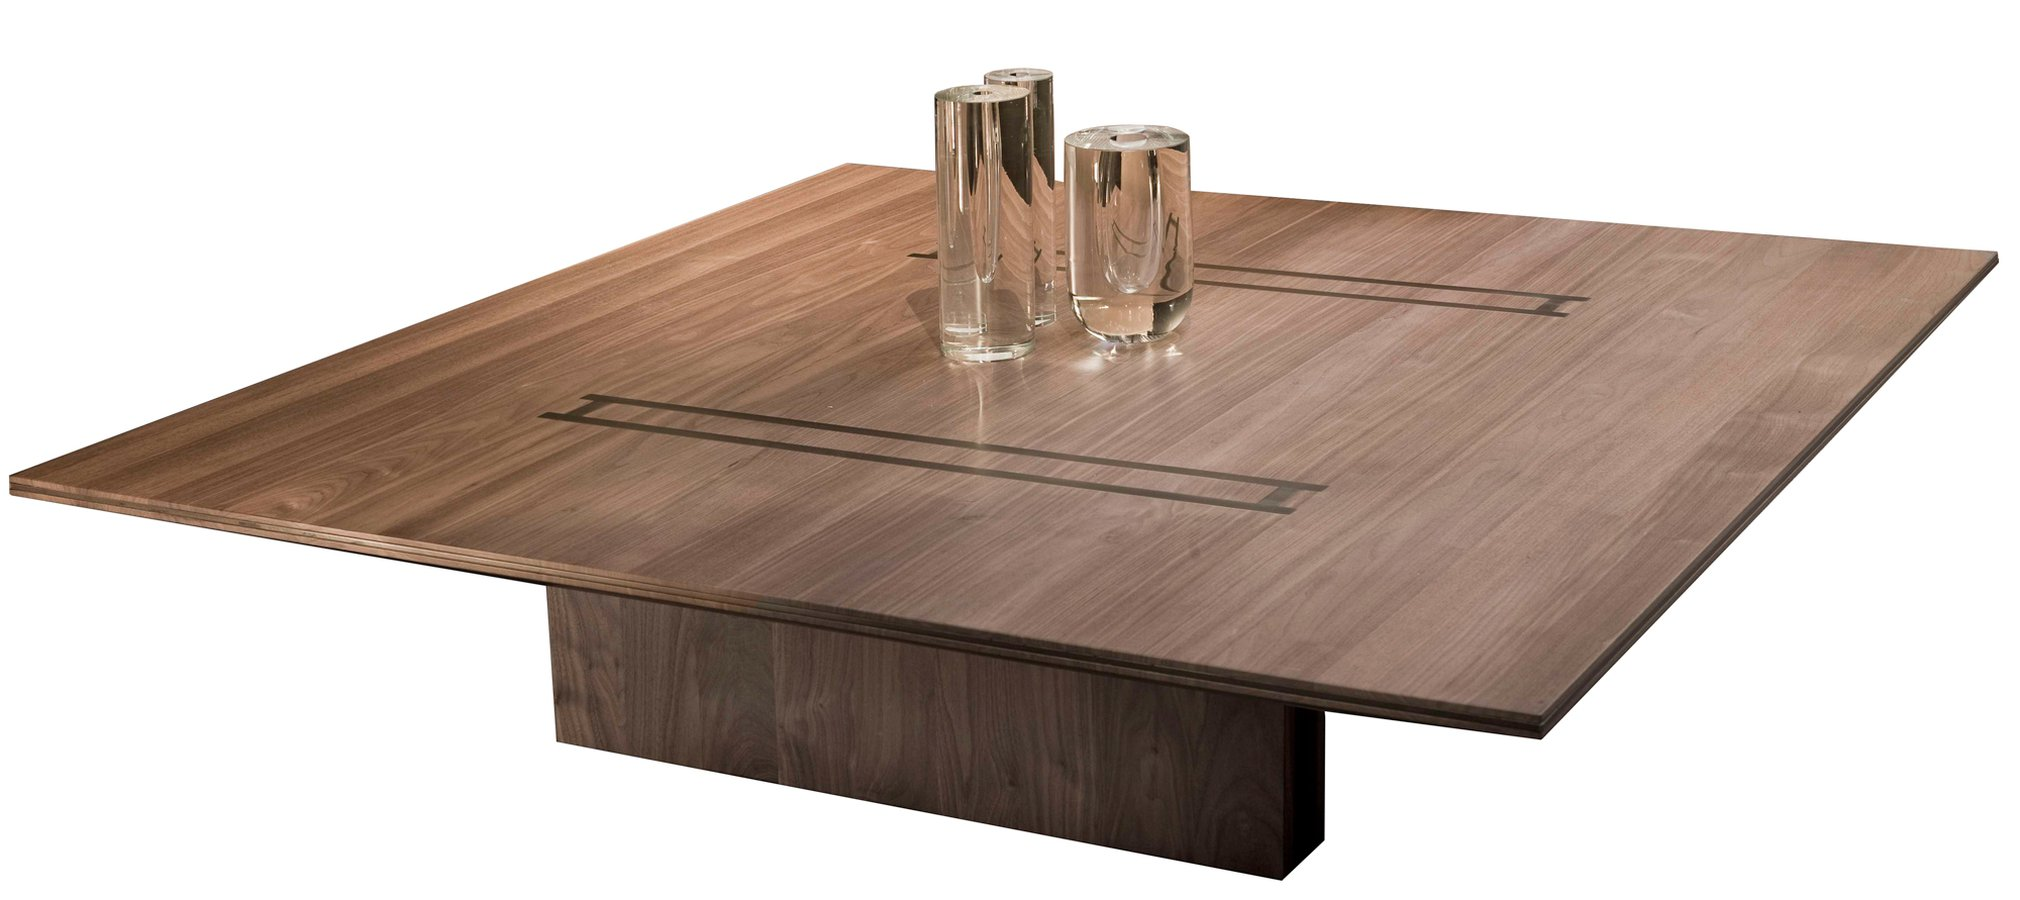 Mantova coffee tables by linteloo ecc for Coffee tables auckland new zealand